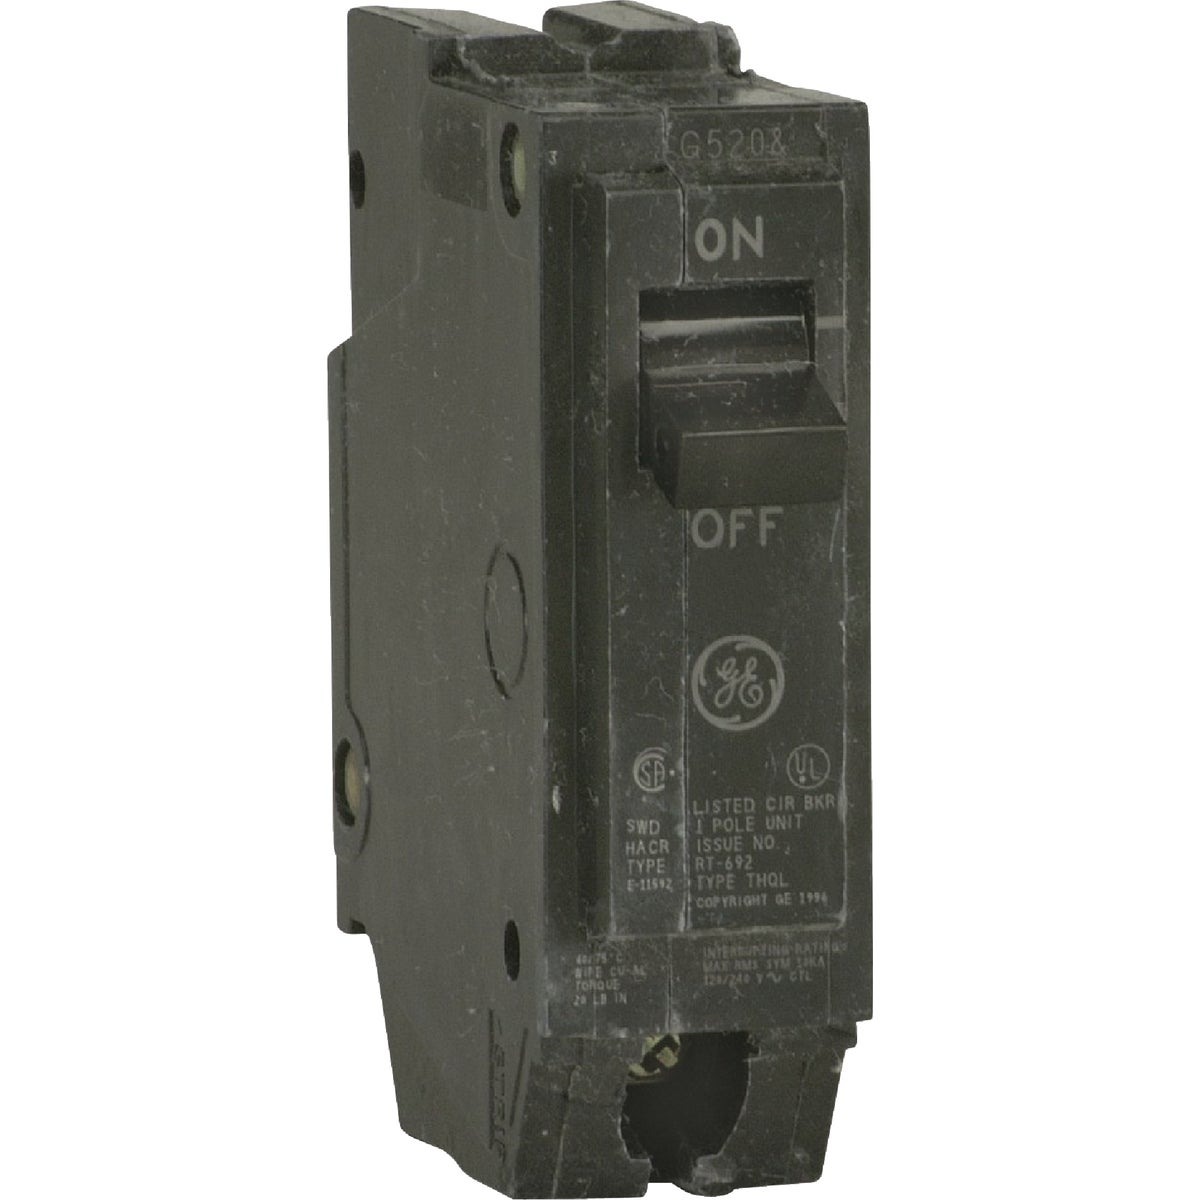 30A SP CIRCUIT BREAKER - THQL1130 by G E Industrial